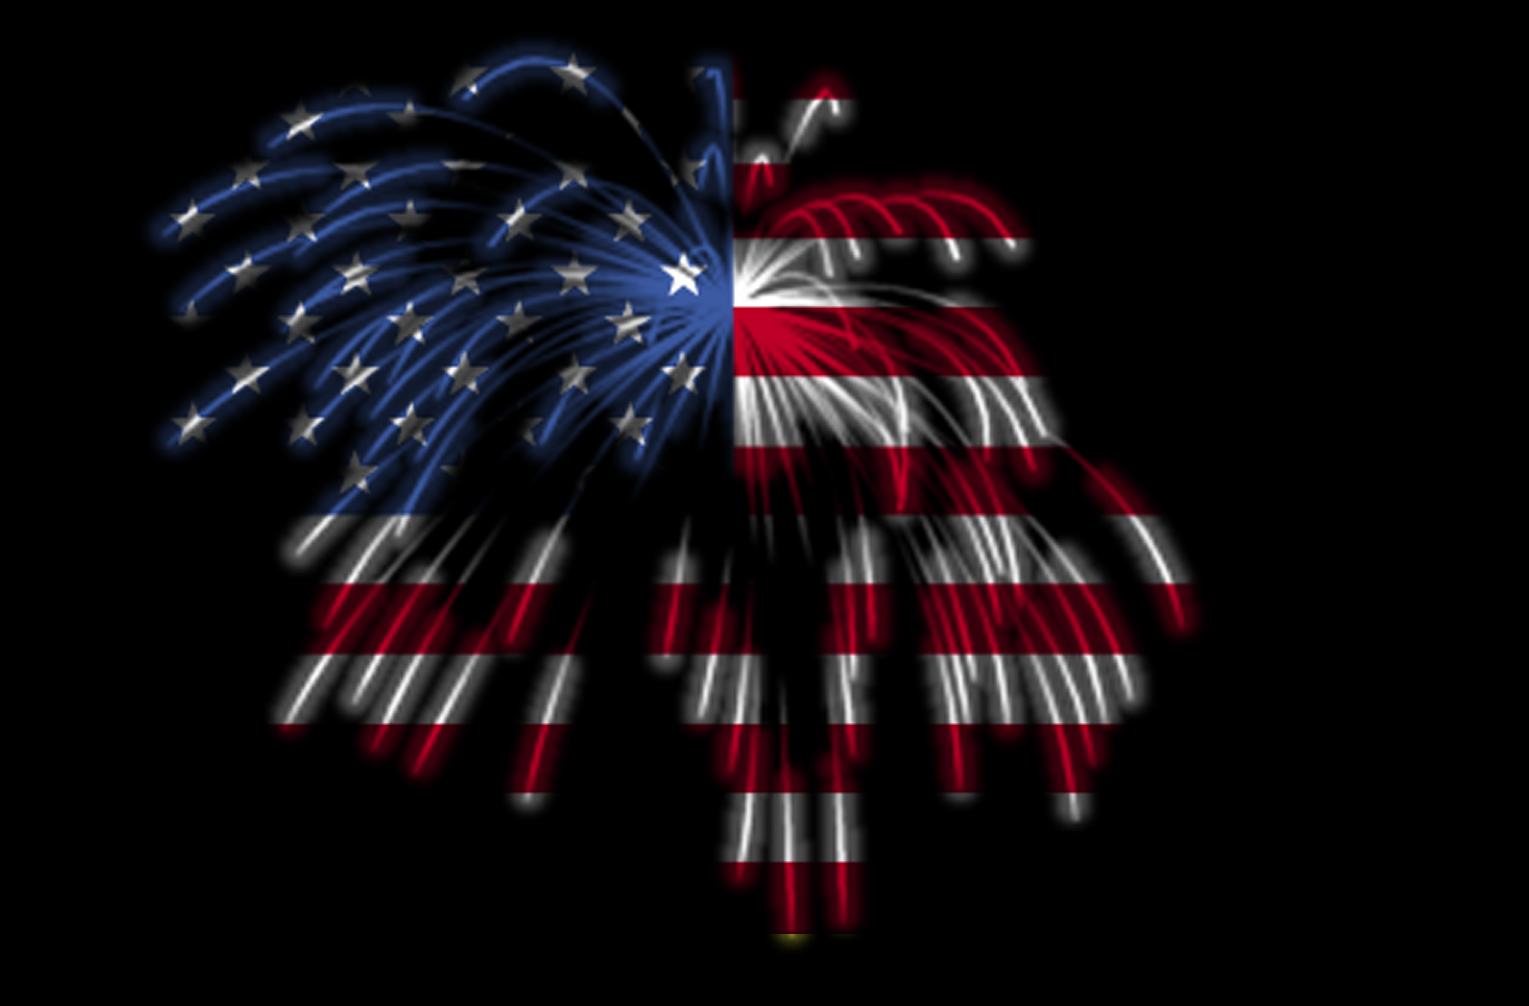 Songs to celebrate independence day the whisper box for What is celebrated on the 4th of july